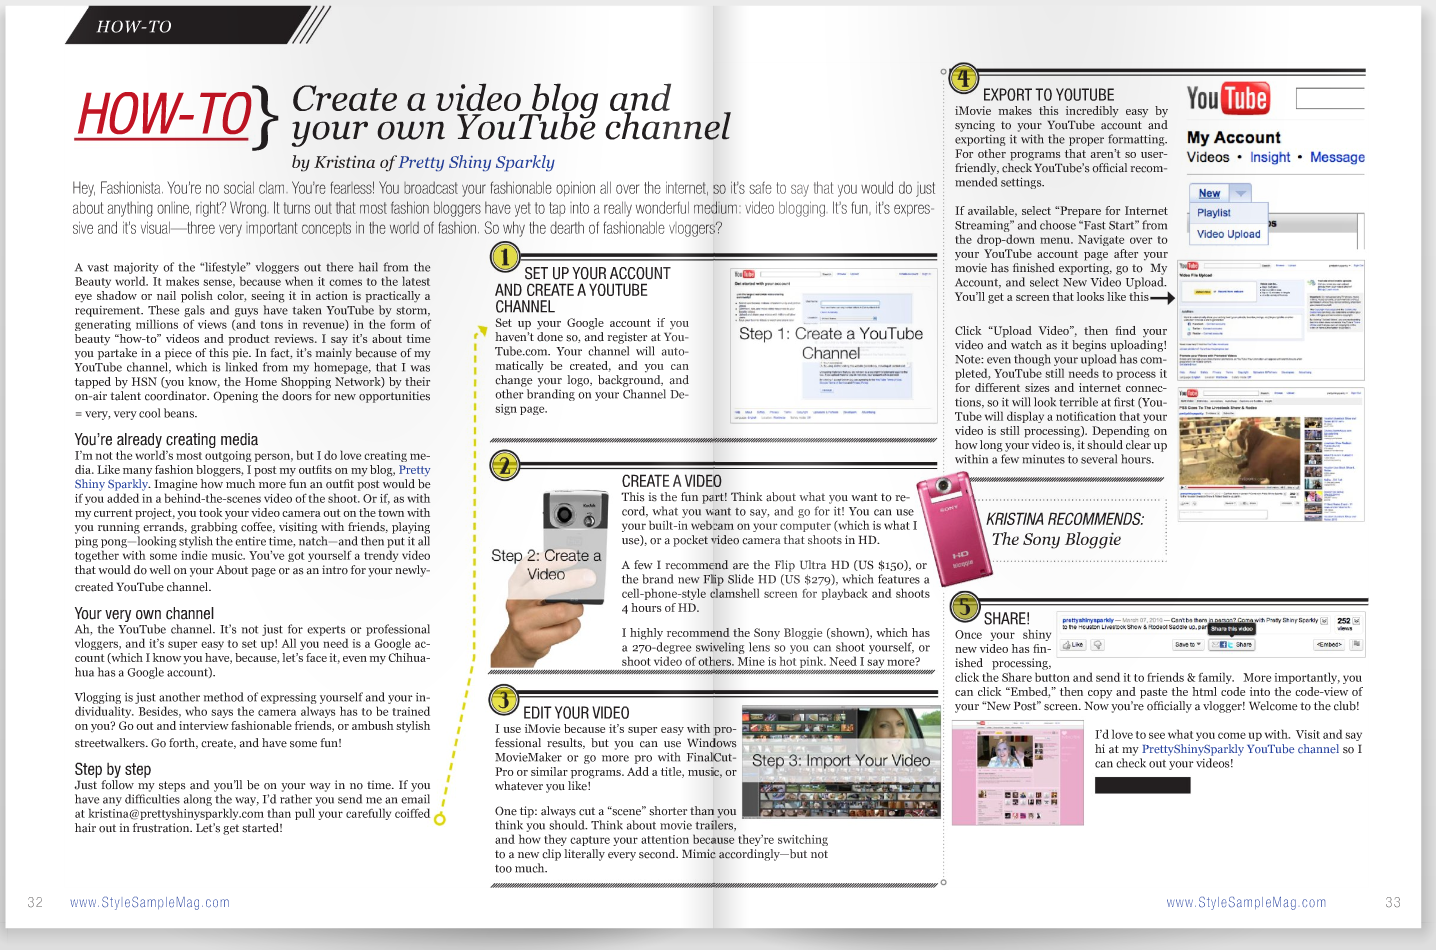 How to create a video blog and your own YouTube channel Style Sample Magazine Issue #7